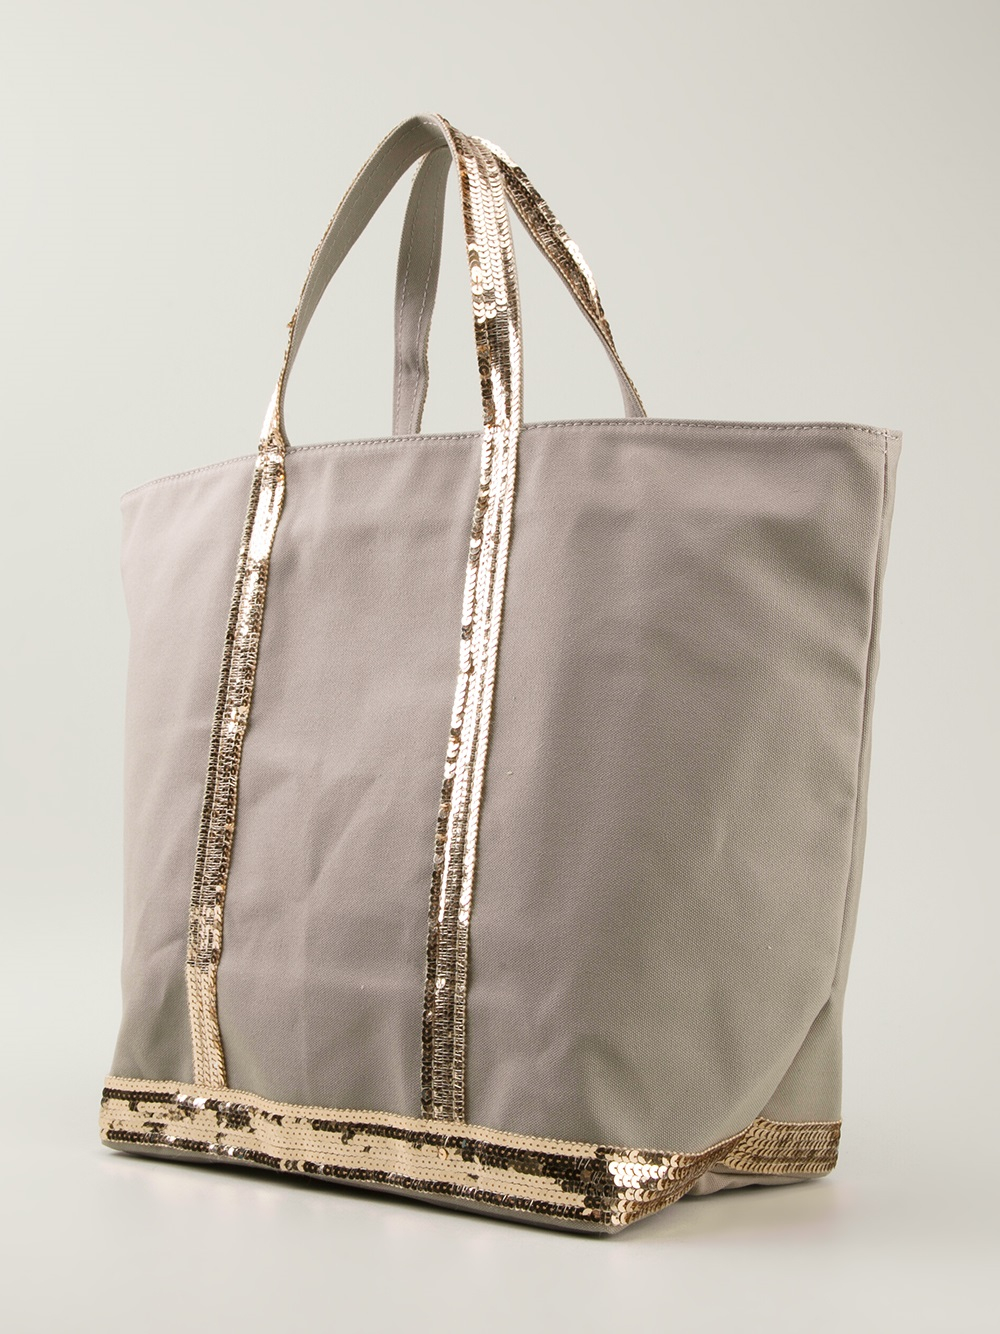 Vanessa bruno Wide Tote Bag in Gray | Lyst